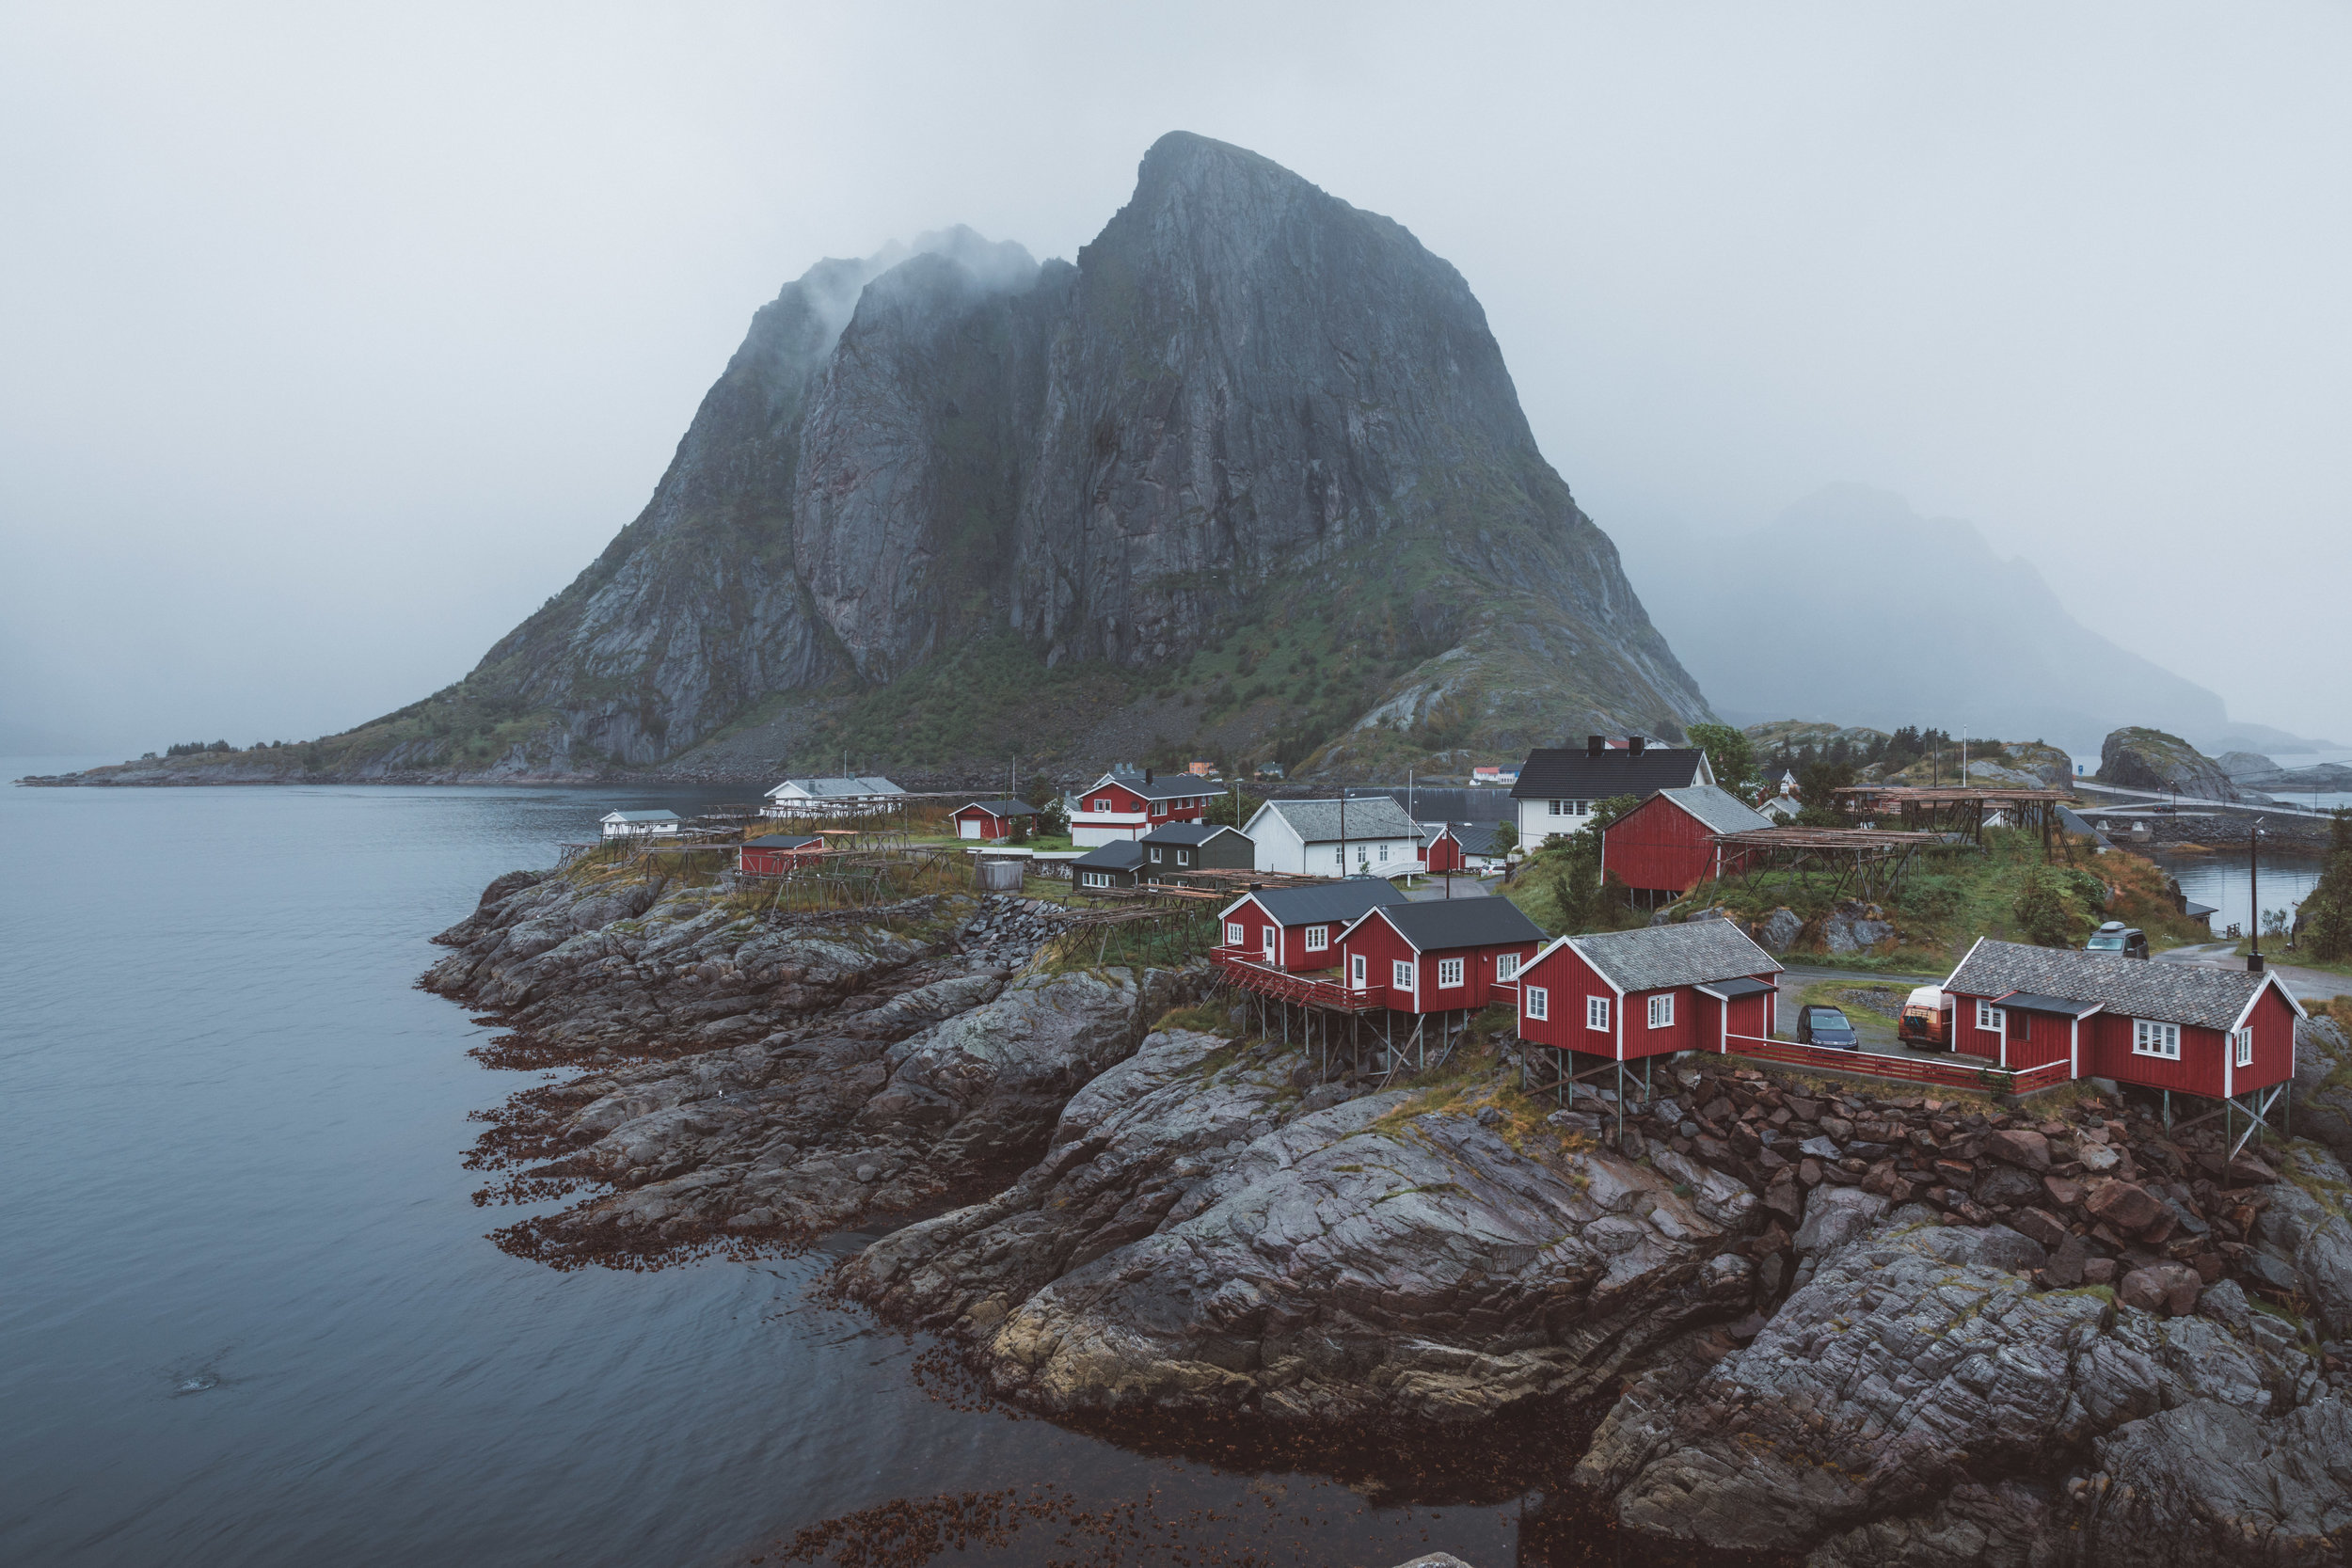 the famous fishing village of Hamnoy